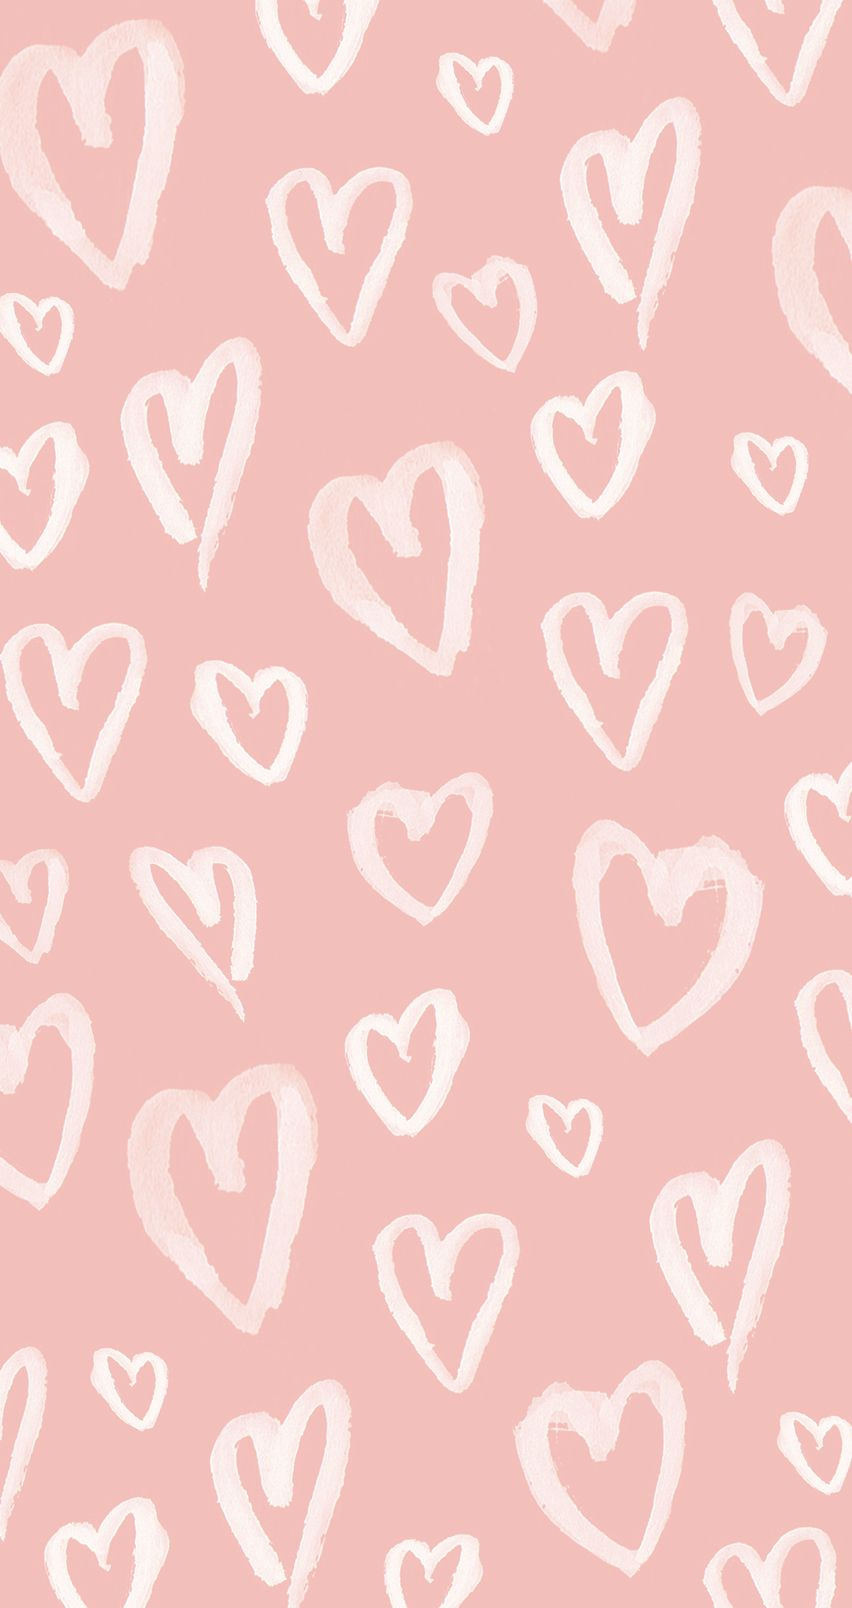 Pastel Pink Hearts Iphone Wallpaper Panpins Heart Iphone Wallpaper New Wallpaper Iphone Phone Wallpaper